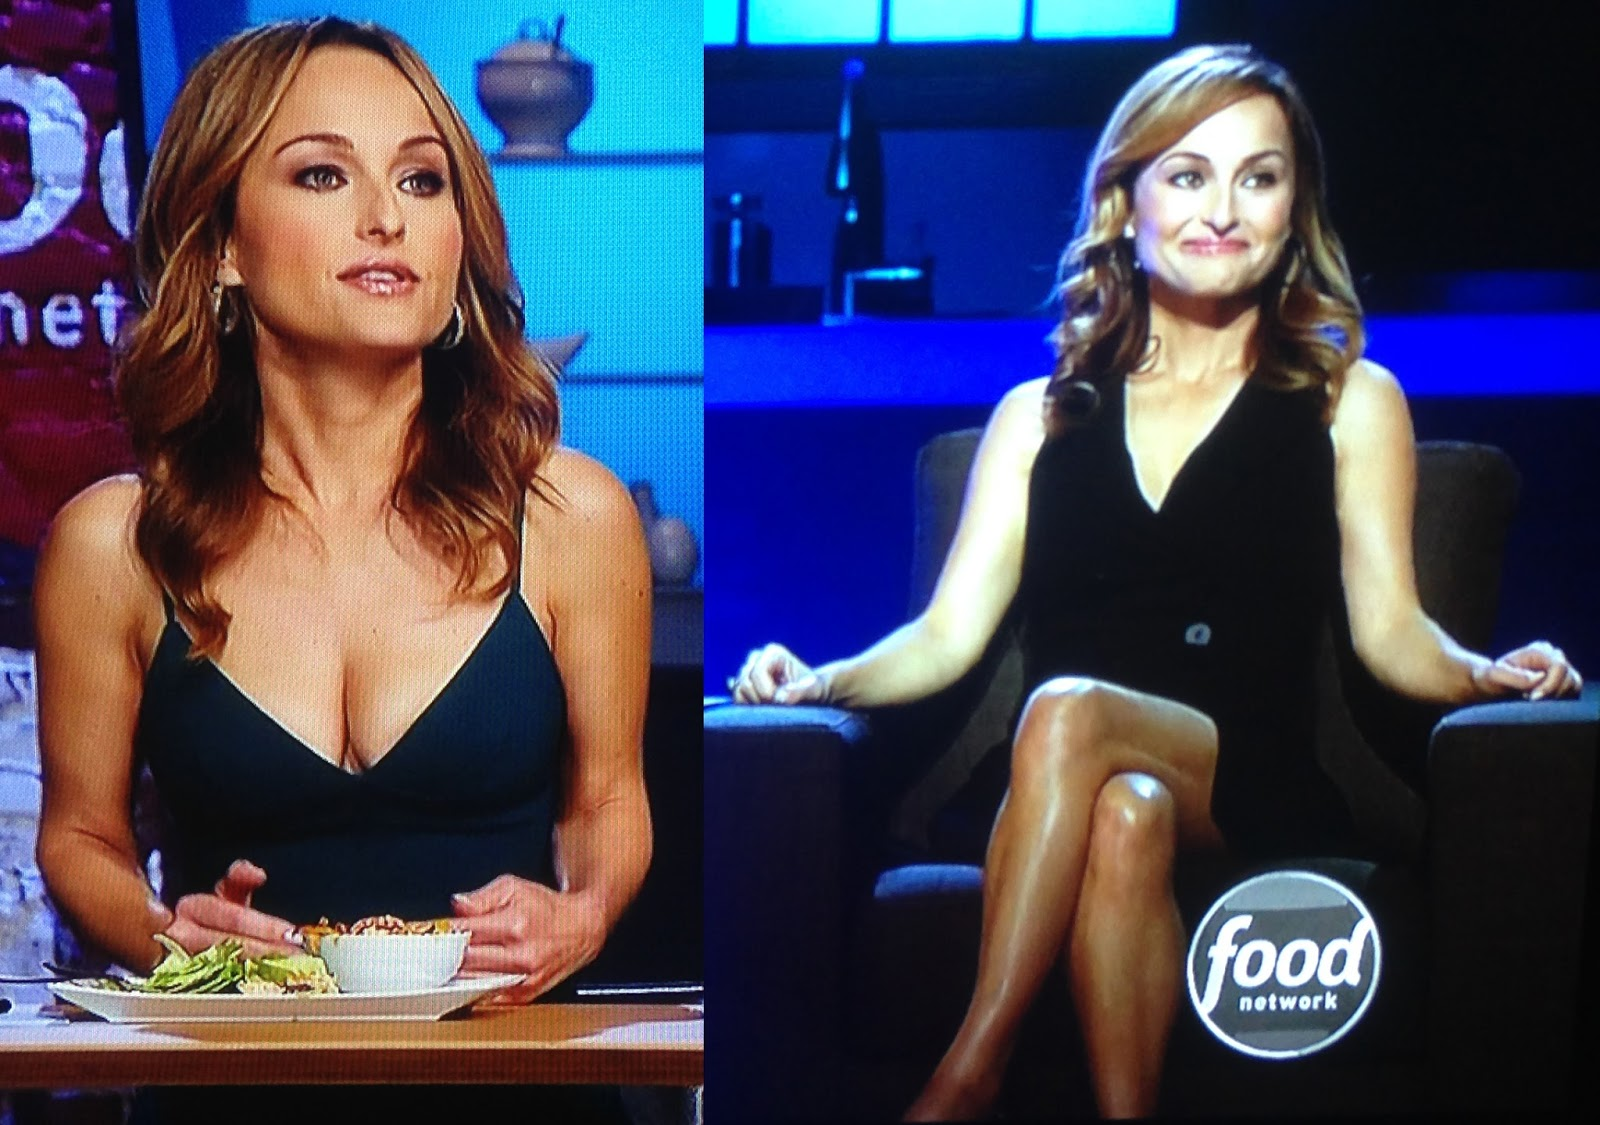 Food network boobs